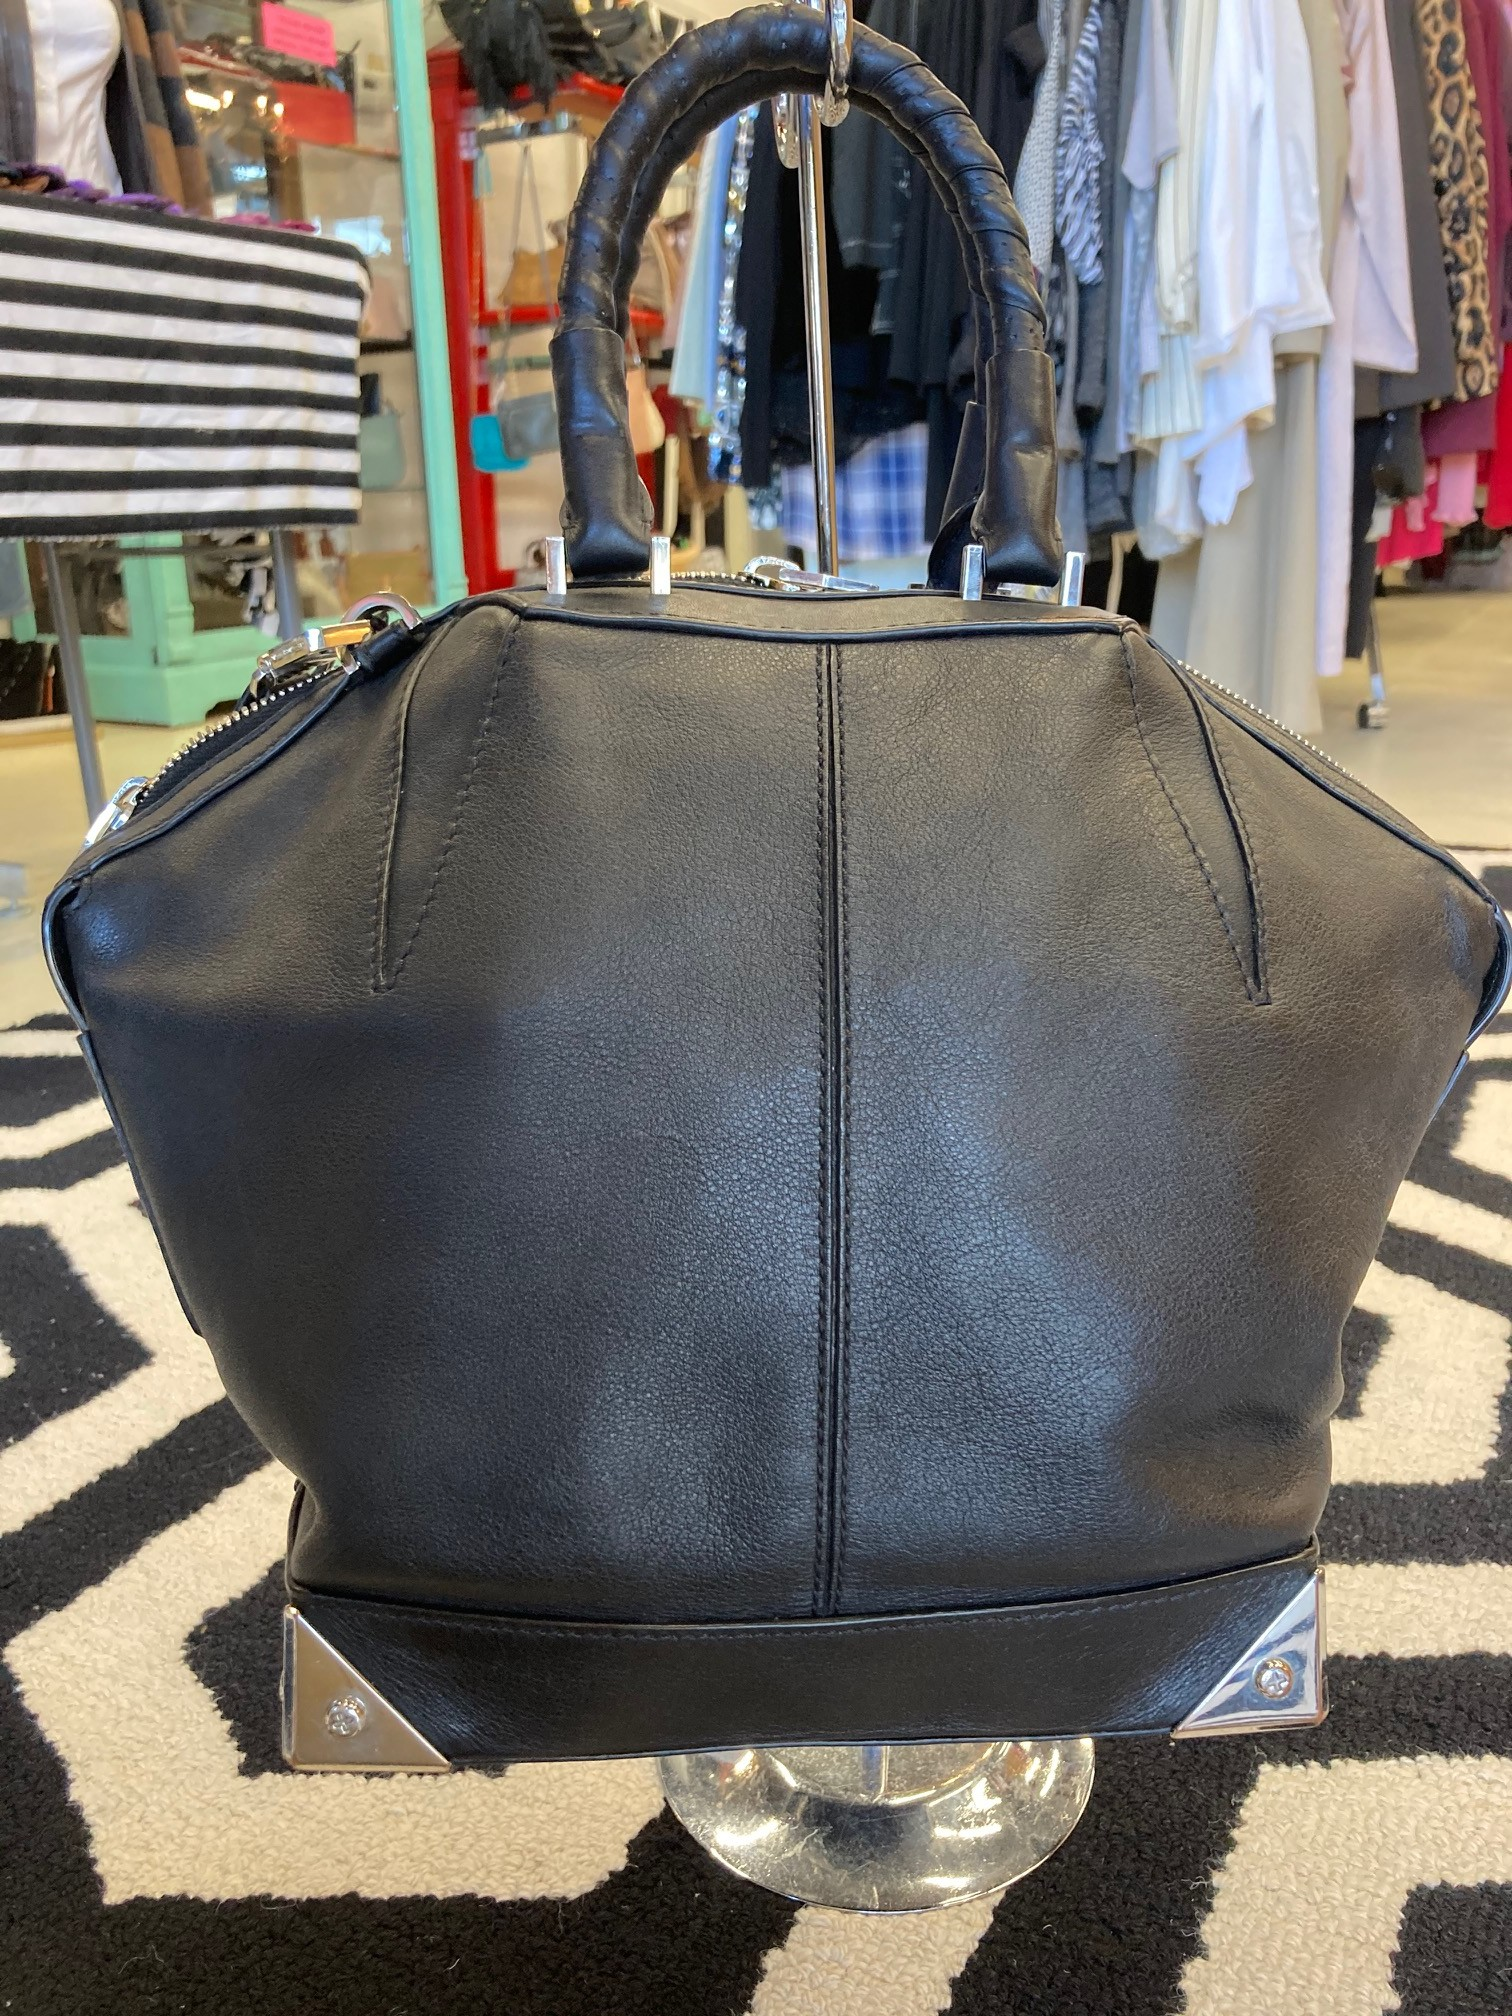 Alexander Wang Purse: Carries as a shoulder or handbag.  Minor scratches around silver bottom corners, but otherwise in great condition.